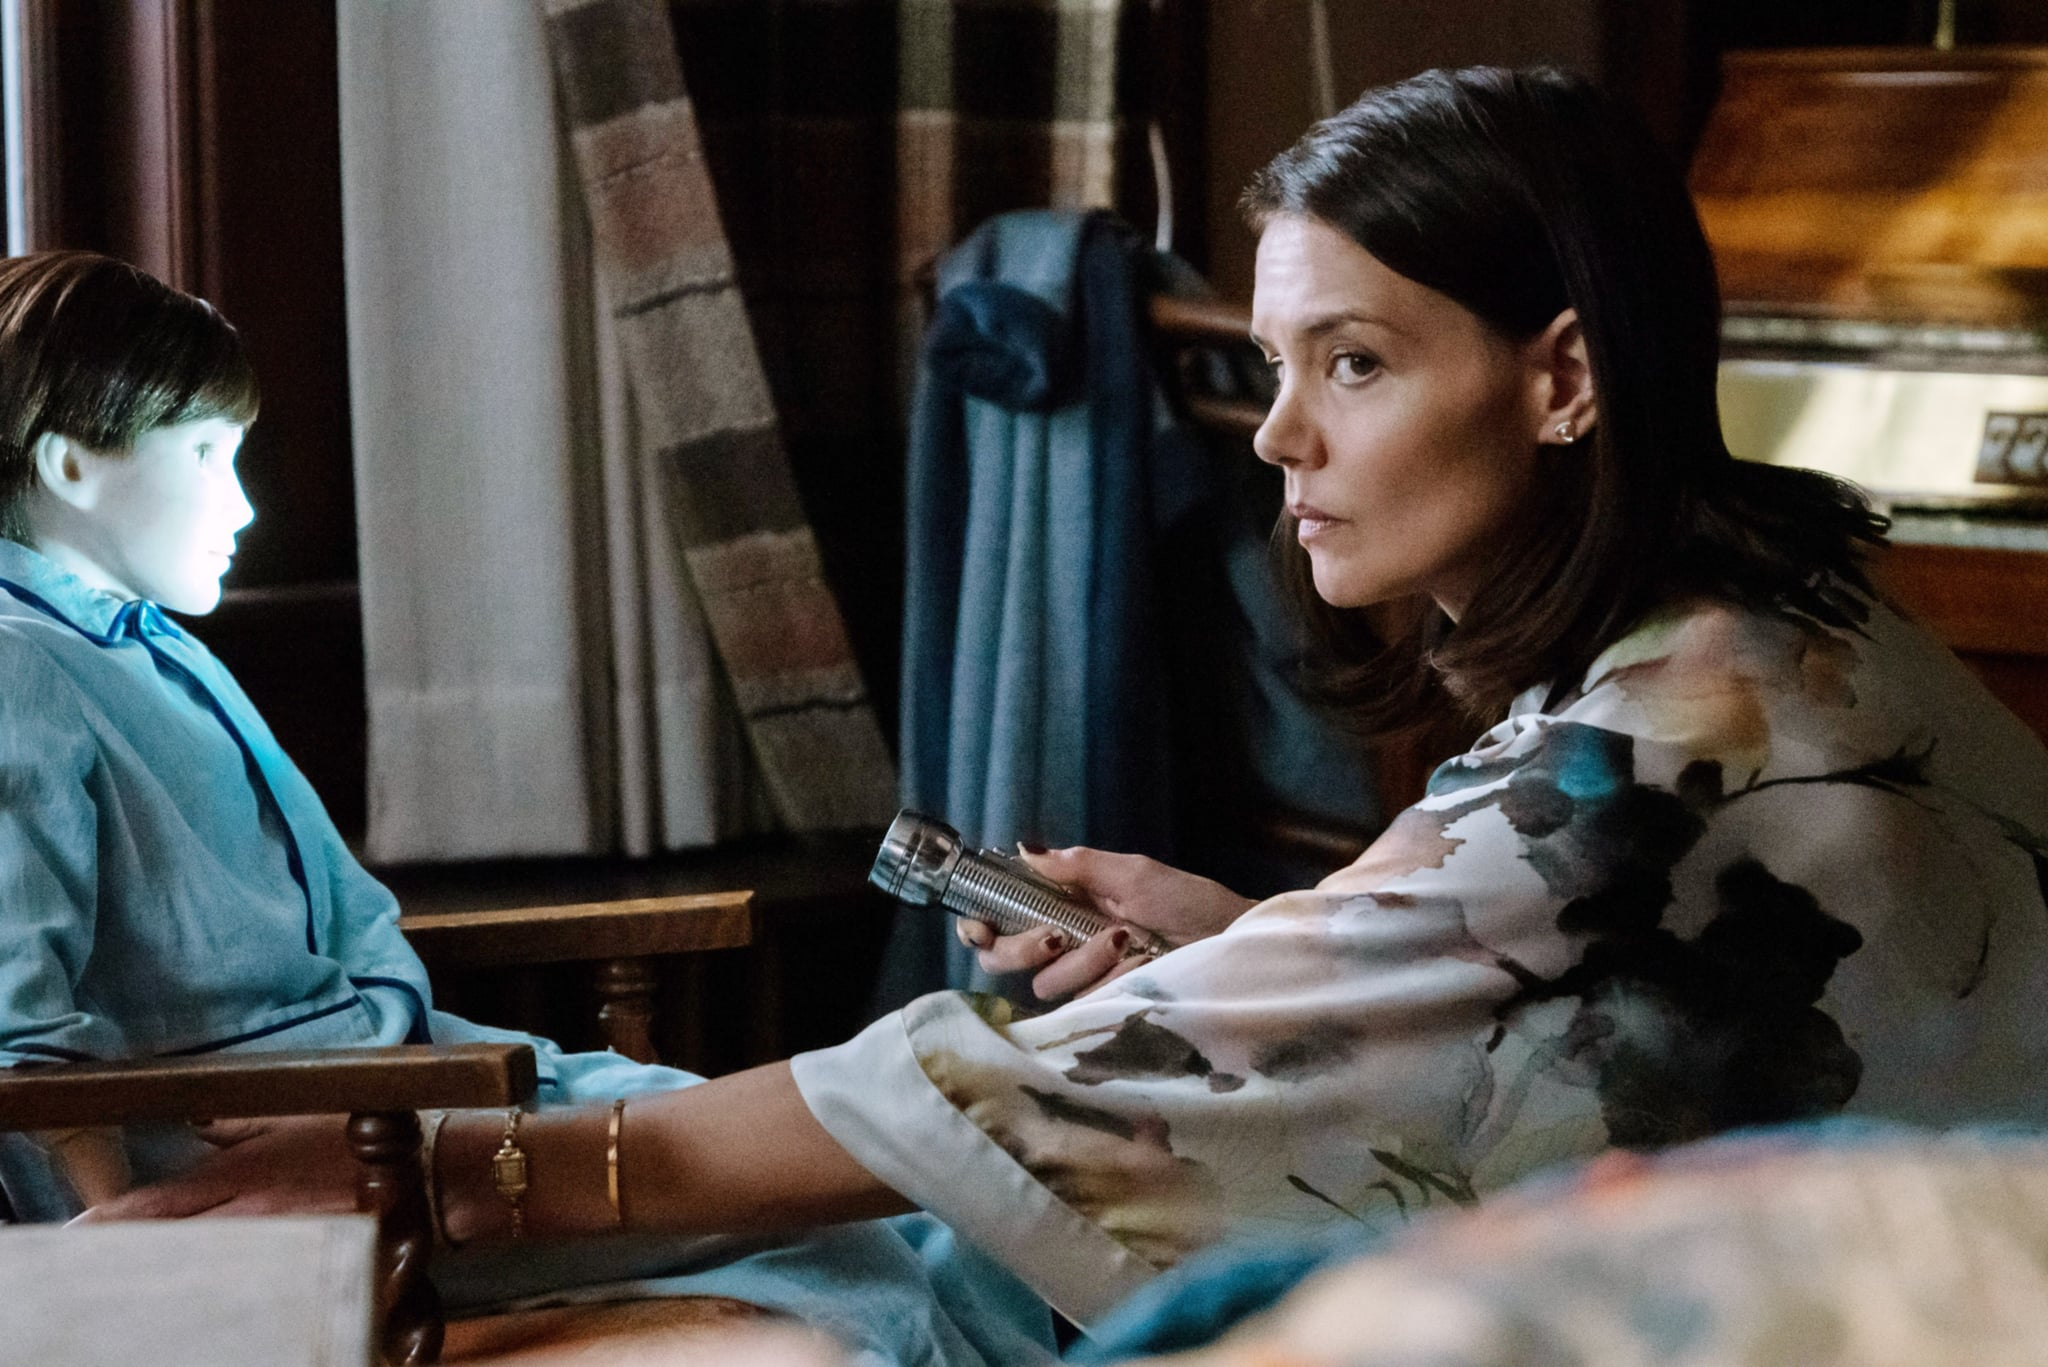 BRAHMS: THE BOY II, from left: Brahms, Katie Holmes, 2020. photo: David Bukach /  STX Films / courtesy Everett Collection